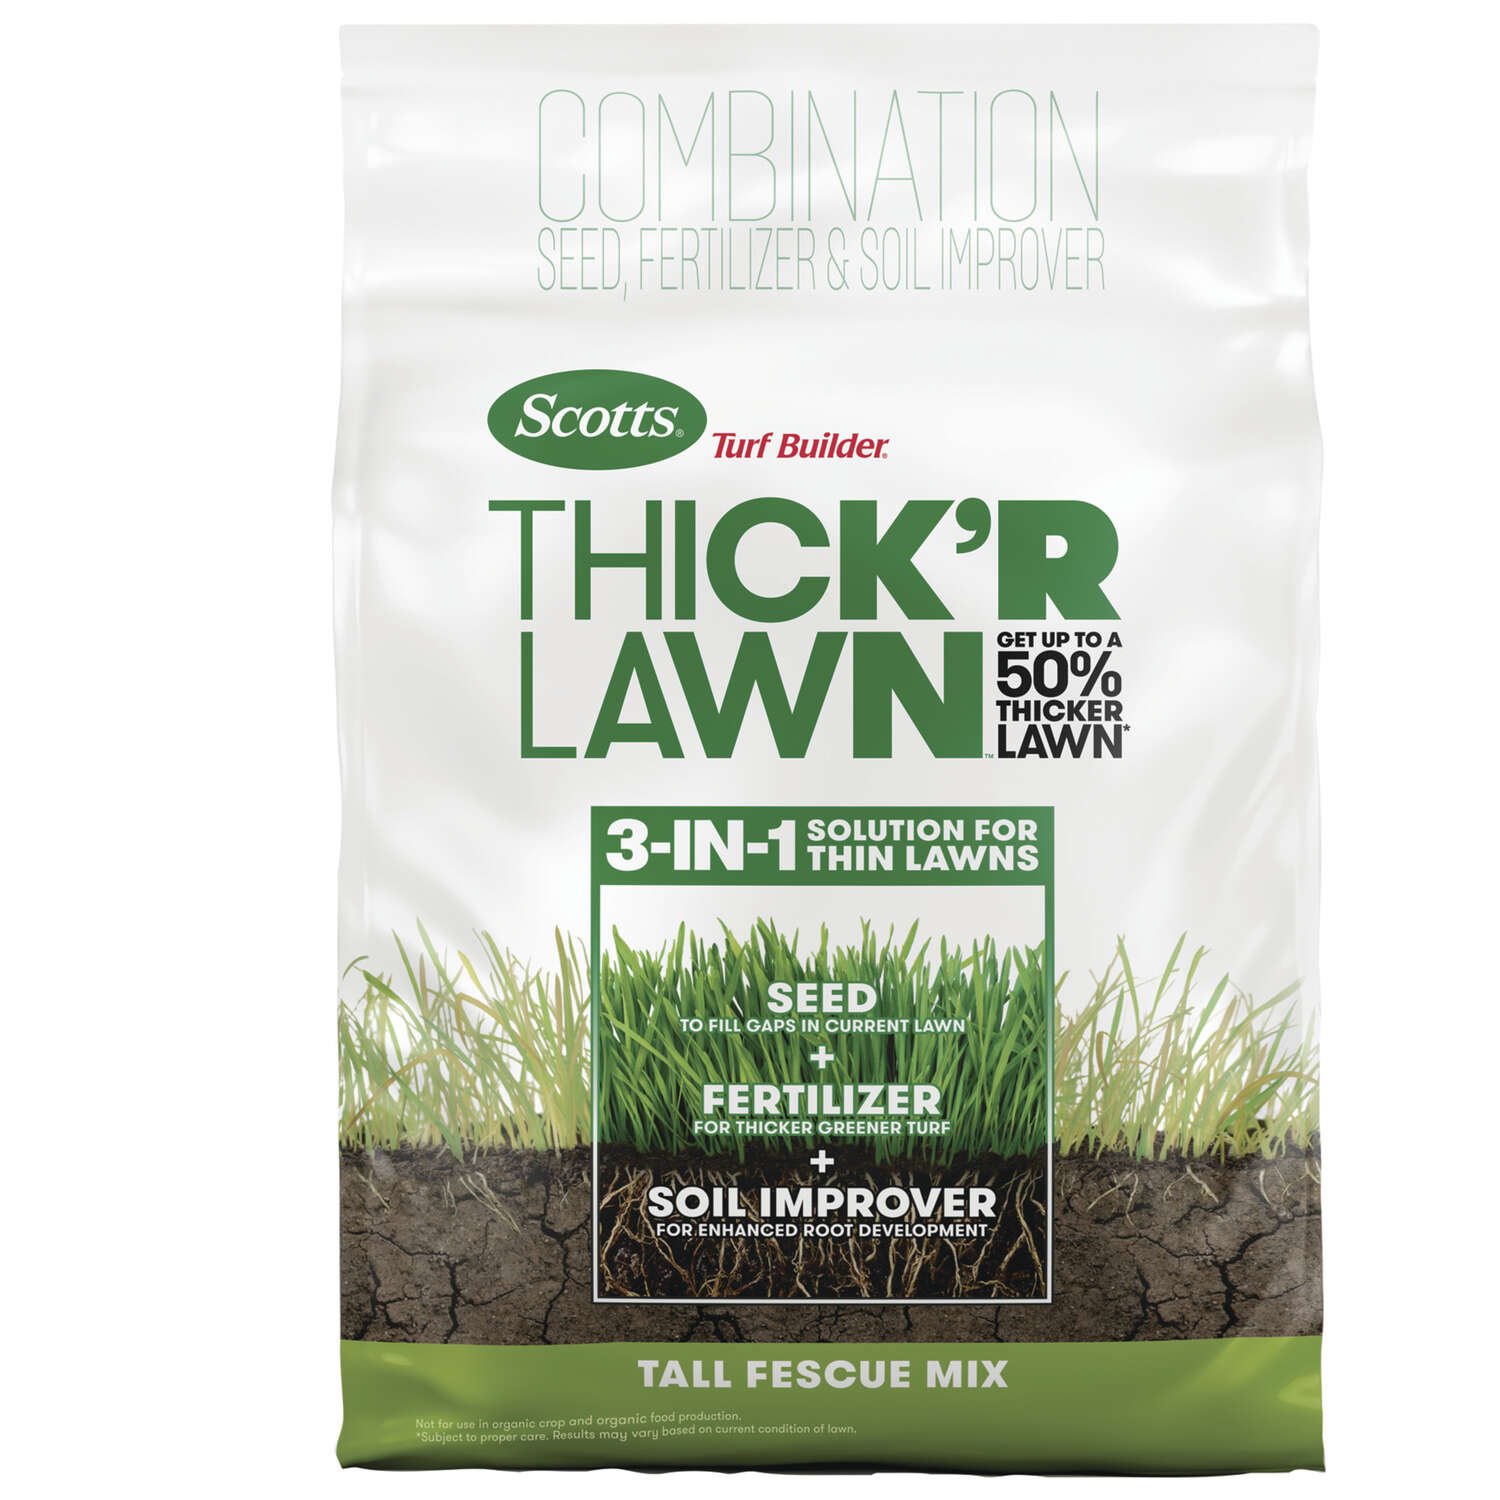 Scotts Turf Builder 9 1 1 Fertilizer Amp Seed For Tall